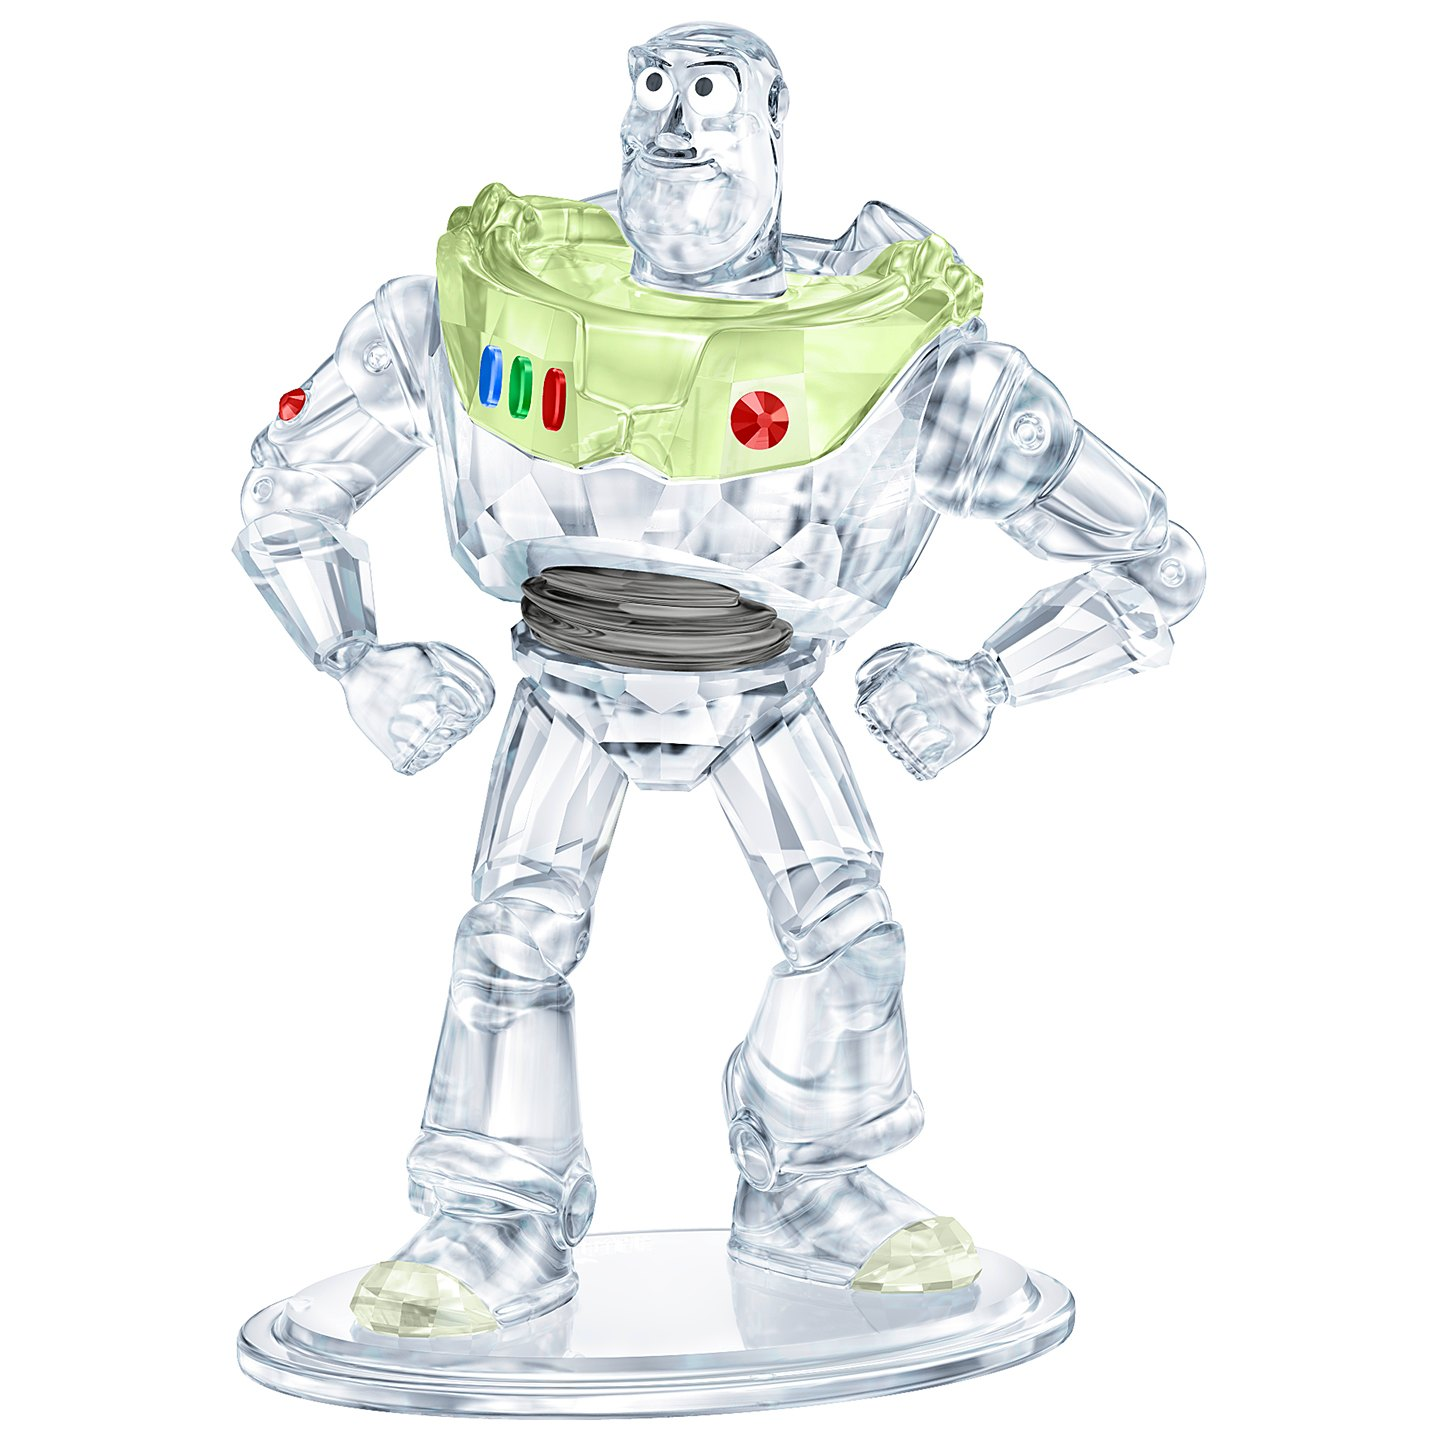 Swarovski Buzz Lightyear Figurine